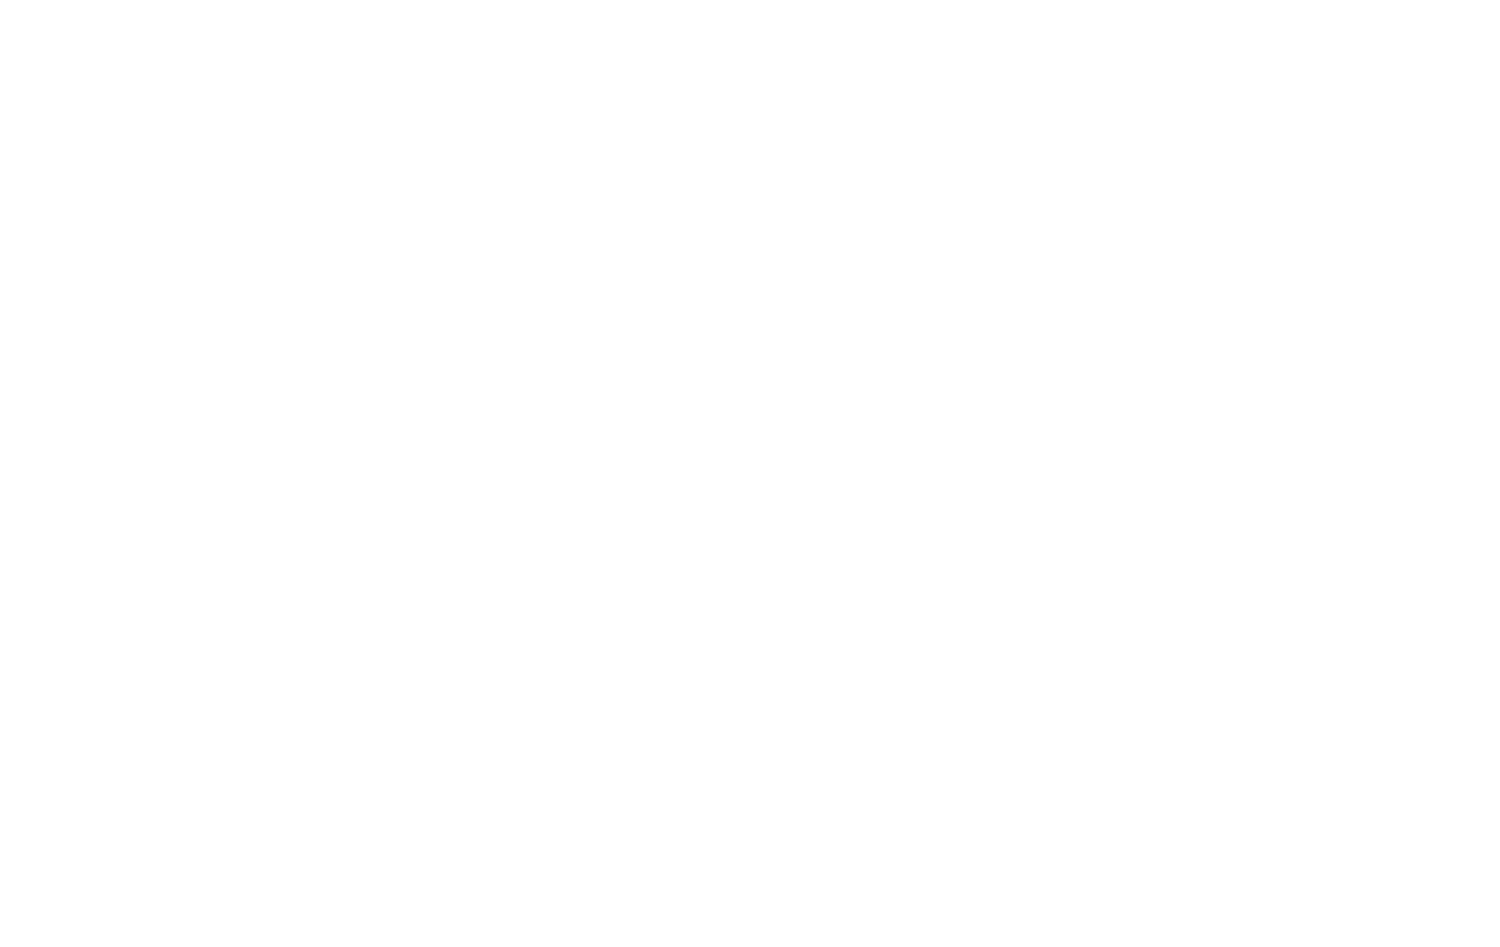 Evolv Device Repair - iPhone, iPad Repair - Tacoma WA